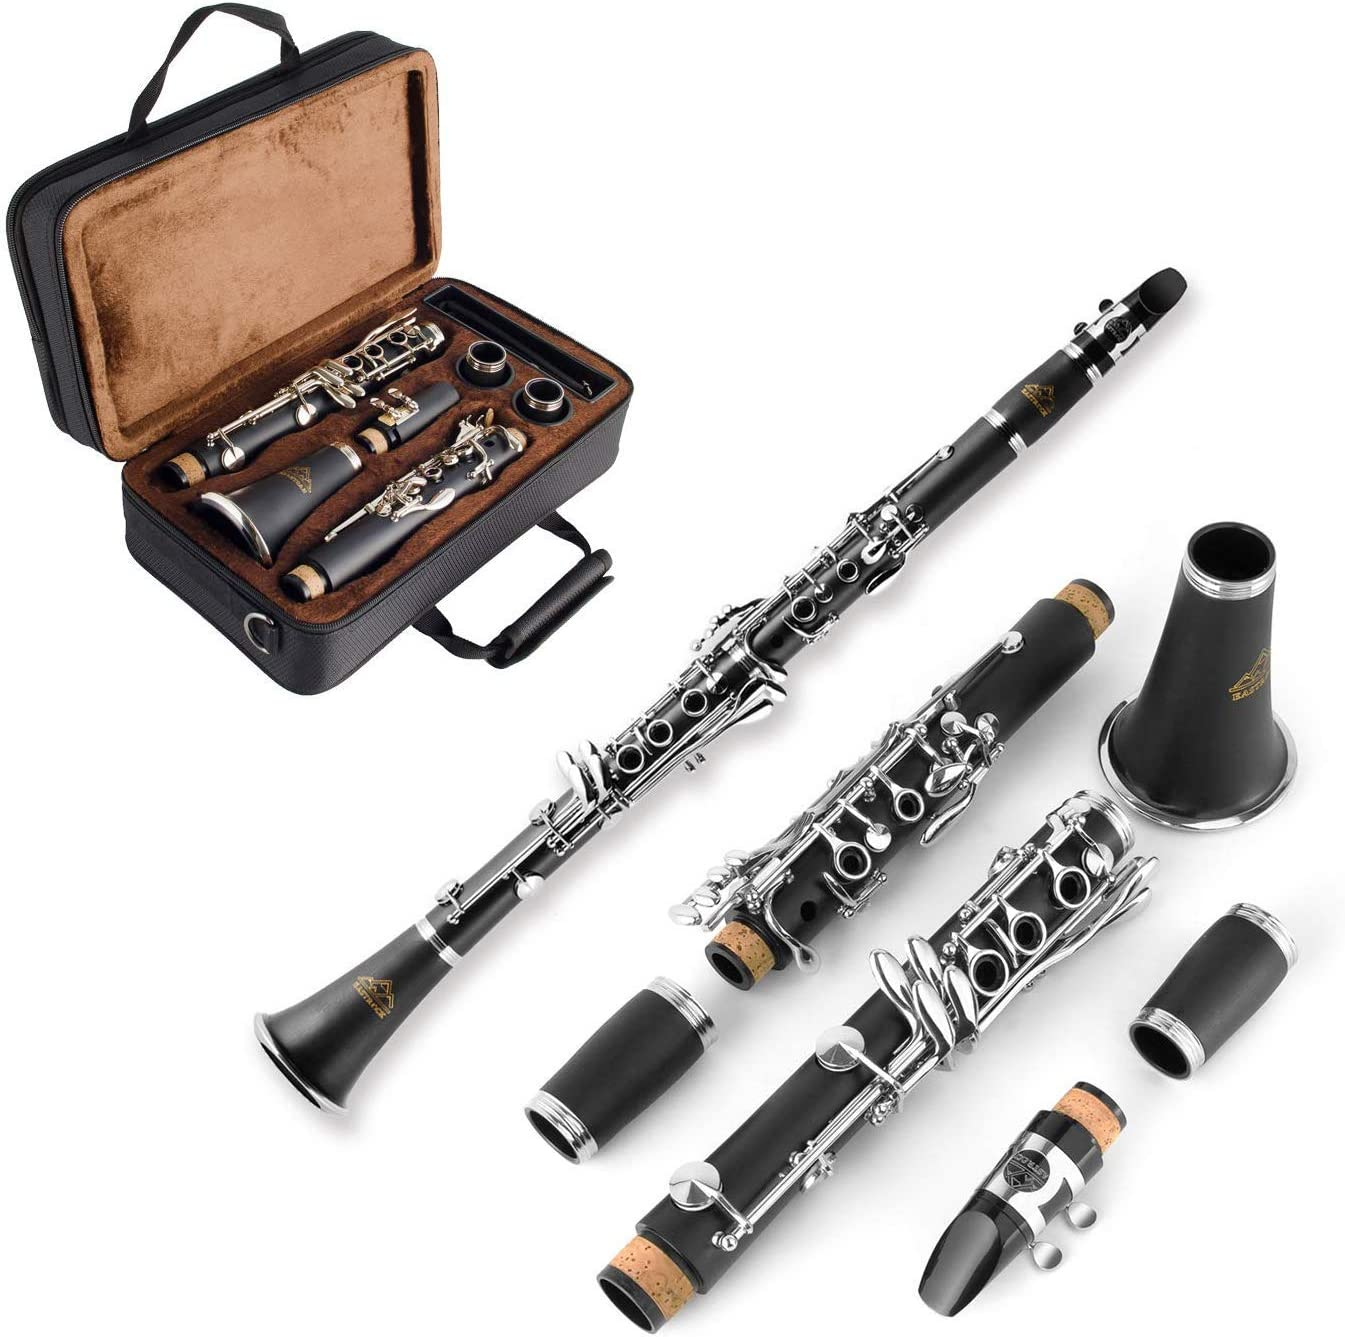 Clarinet Mouthpiece EastRock Clarinet Bb Nickel 17 Keys for Beginner Student Clarinet with 2 Barrels Case